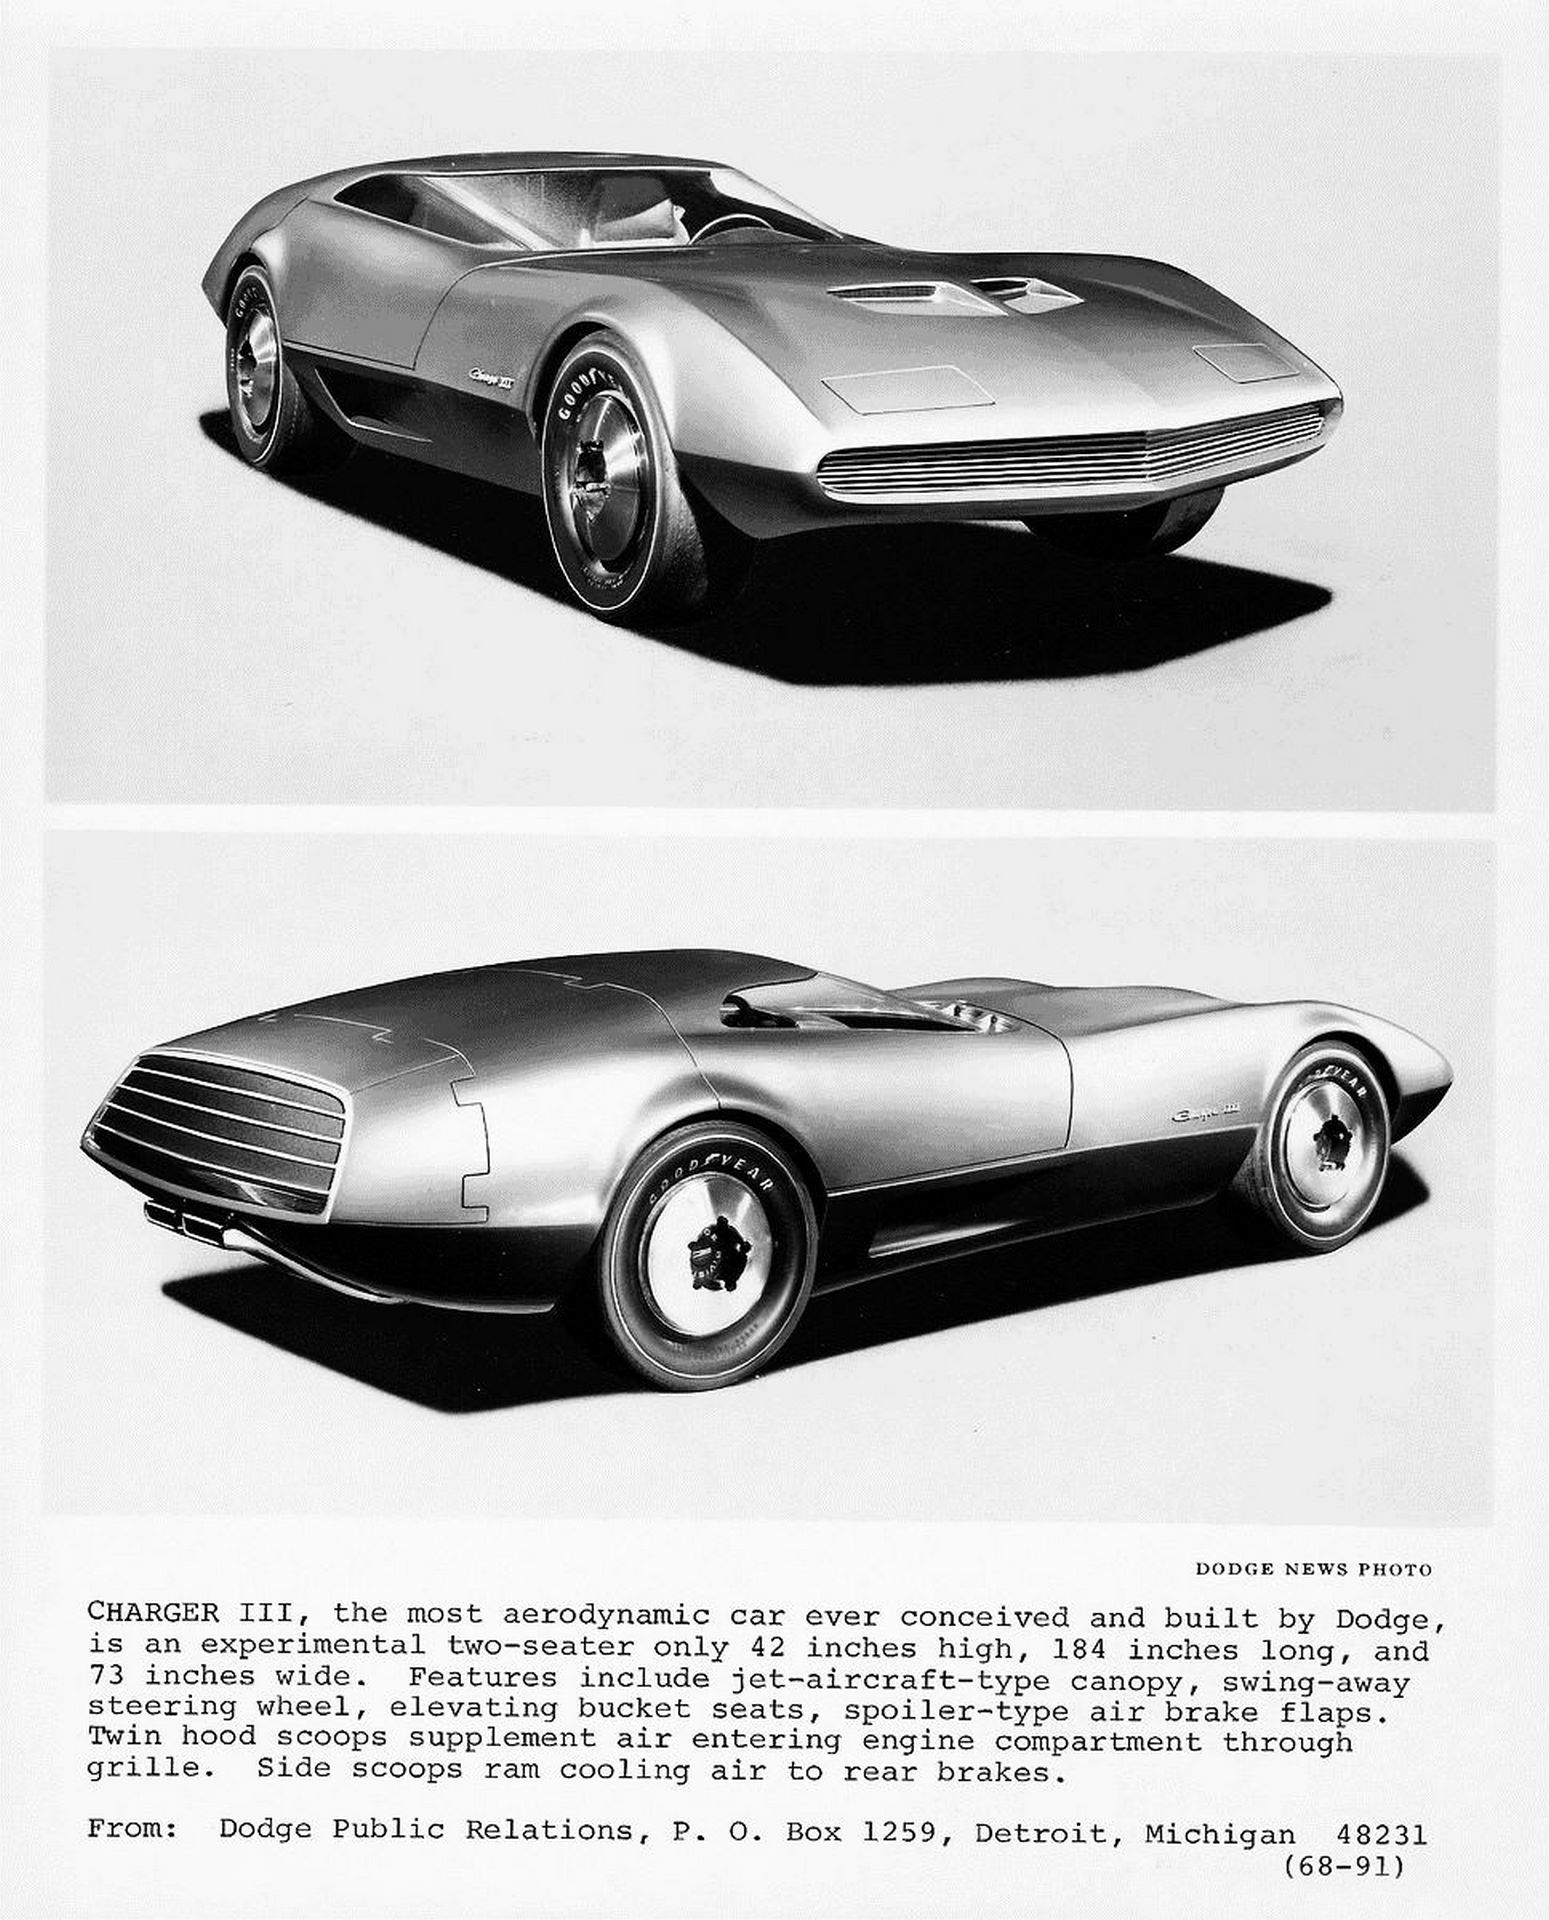 Dodge-Charger-III-concept-8